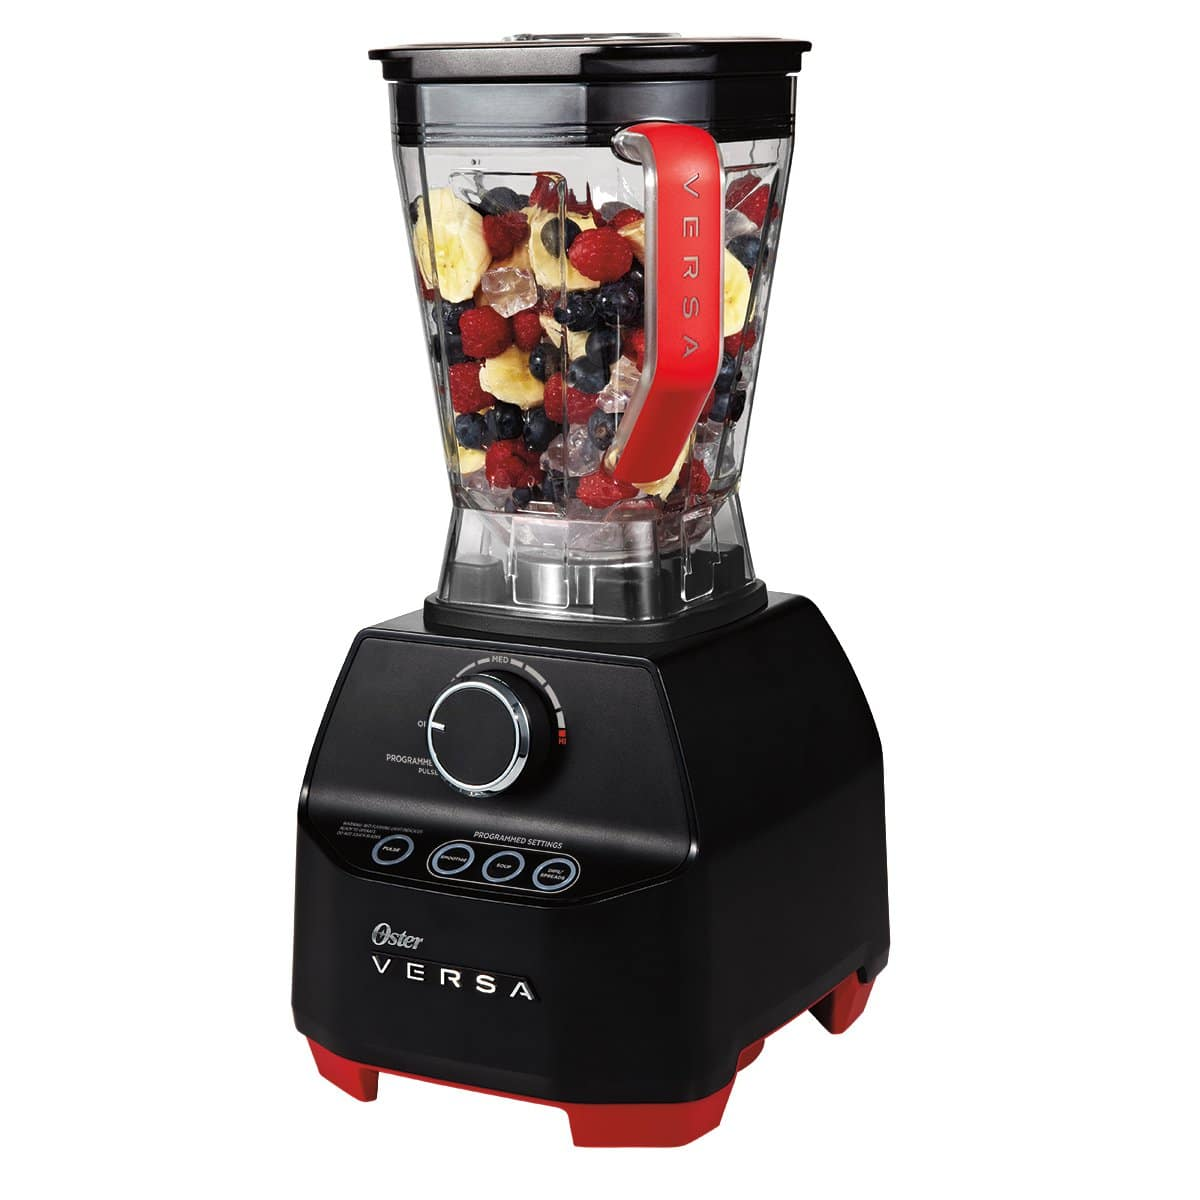 Oster Versa Pro Series 1400W 28,000 RPM Blender with Low Profile Jar $99.99 + Free Shipping